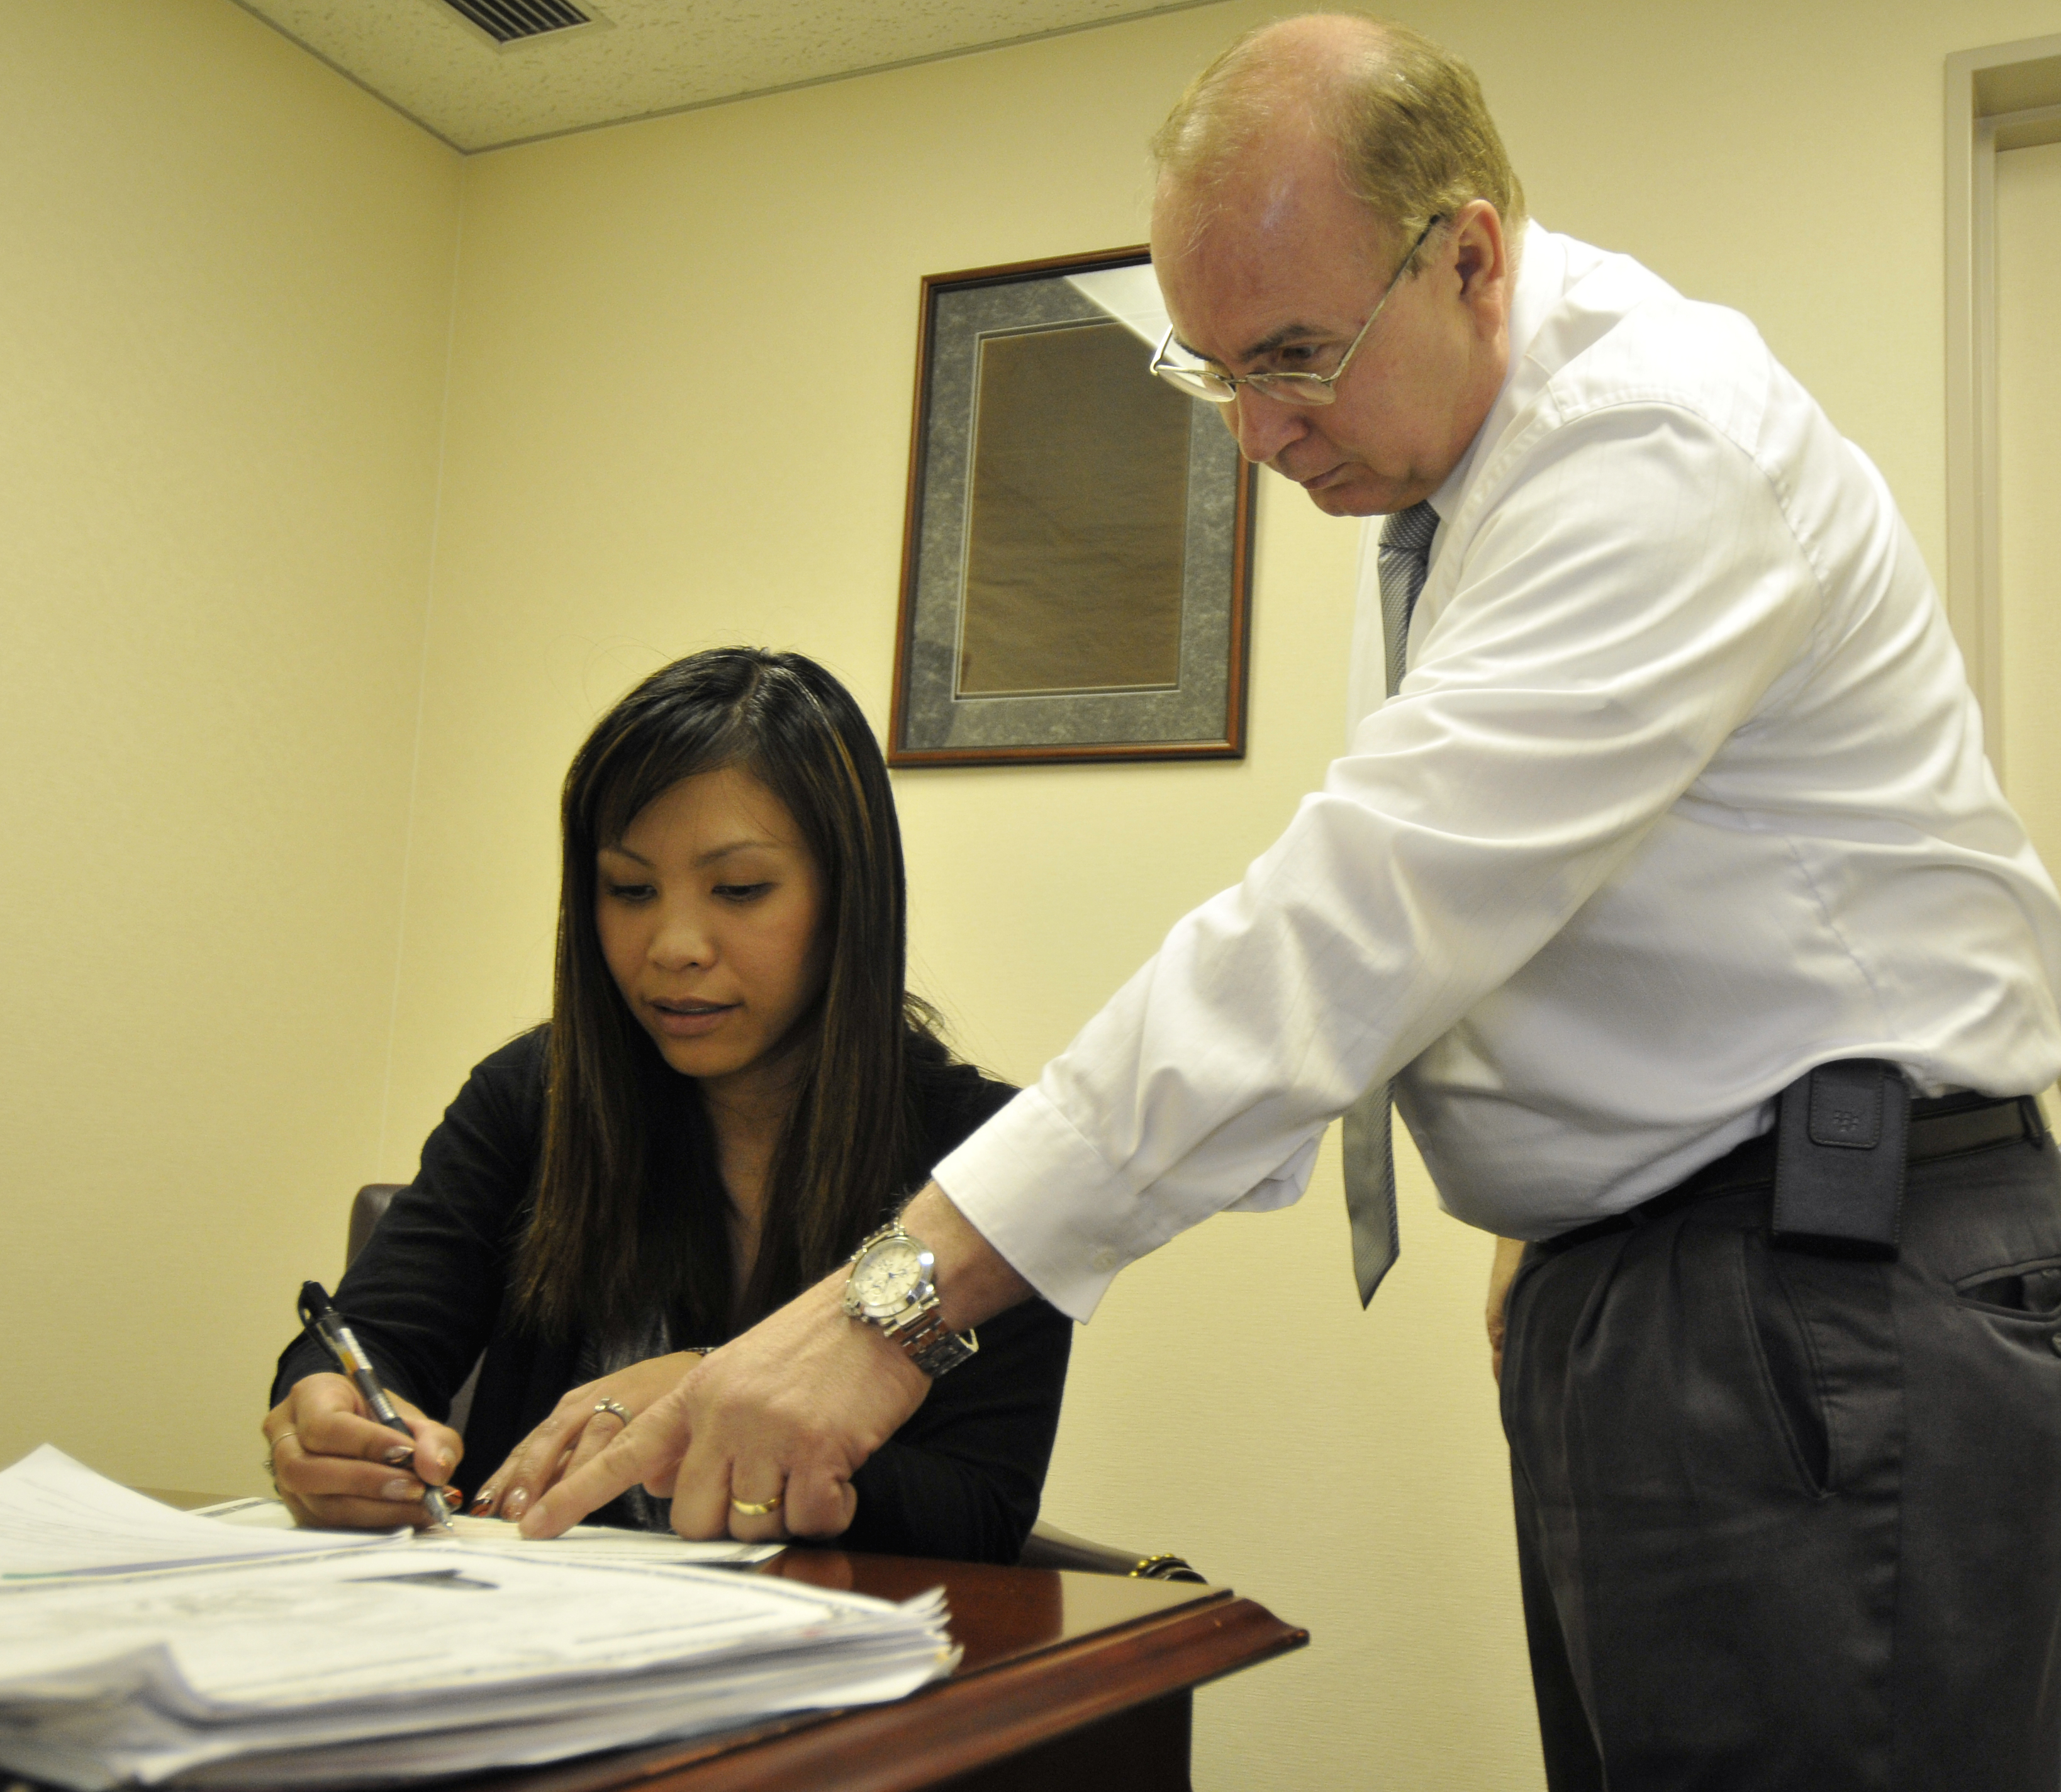 Naturalization proceedings a first at Misawa > Pacific Air Forces